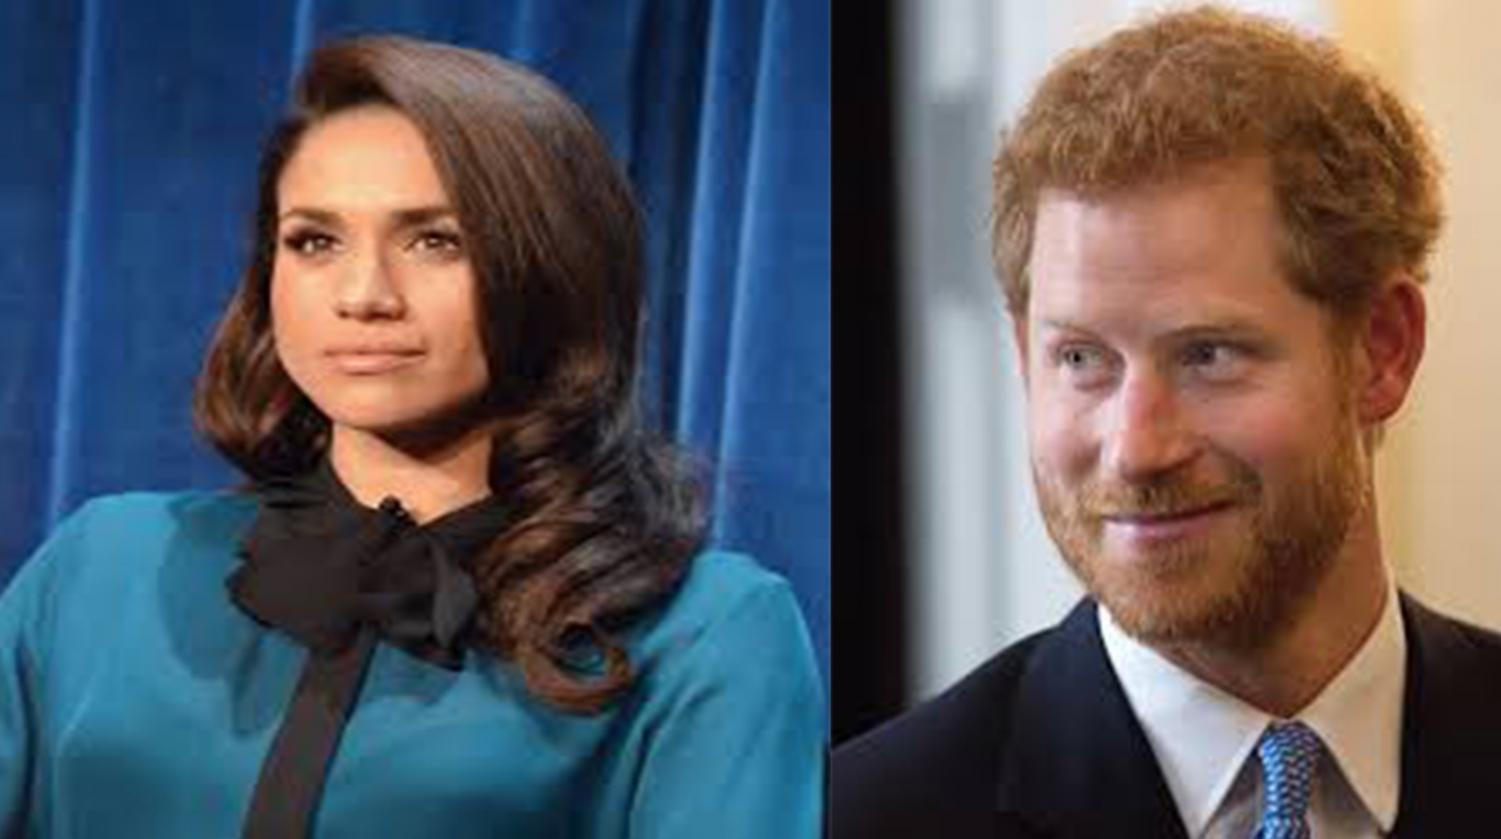 Meghan Markle and Prince Harry. Photo credit (Genevieve -Markle photo) and (E.J. Hersom - Harry)